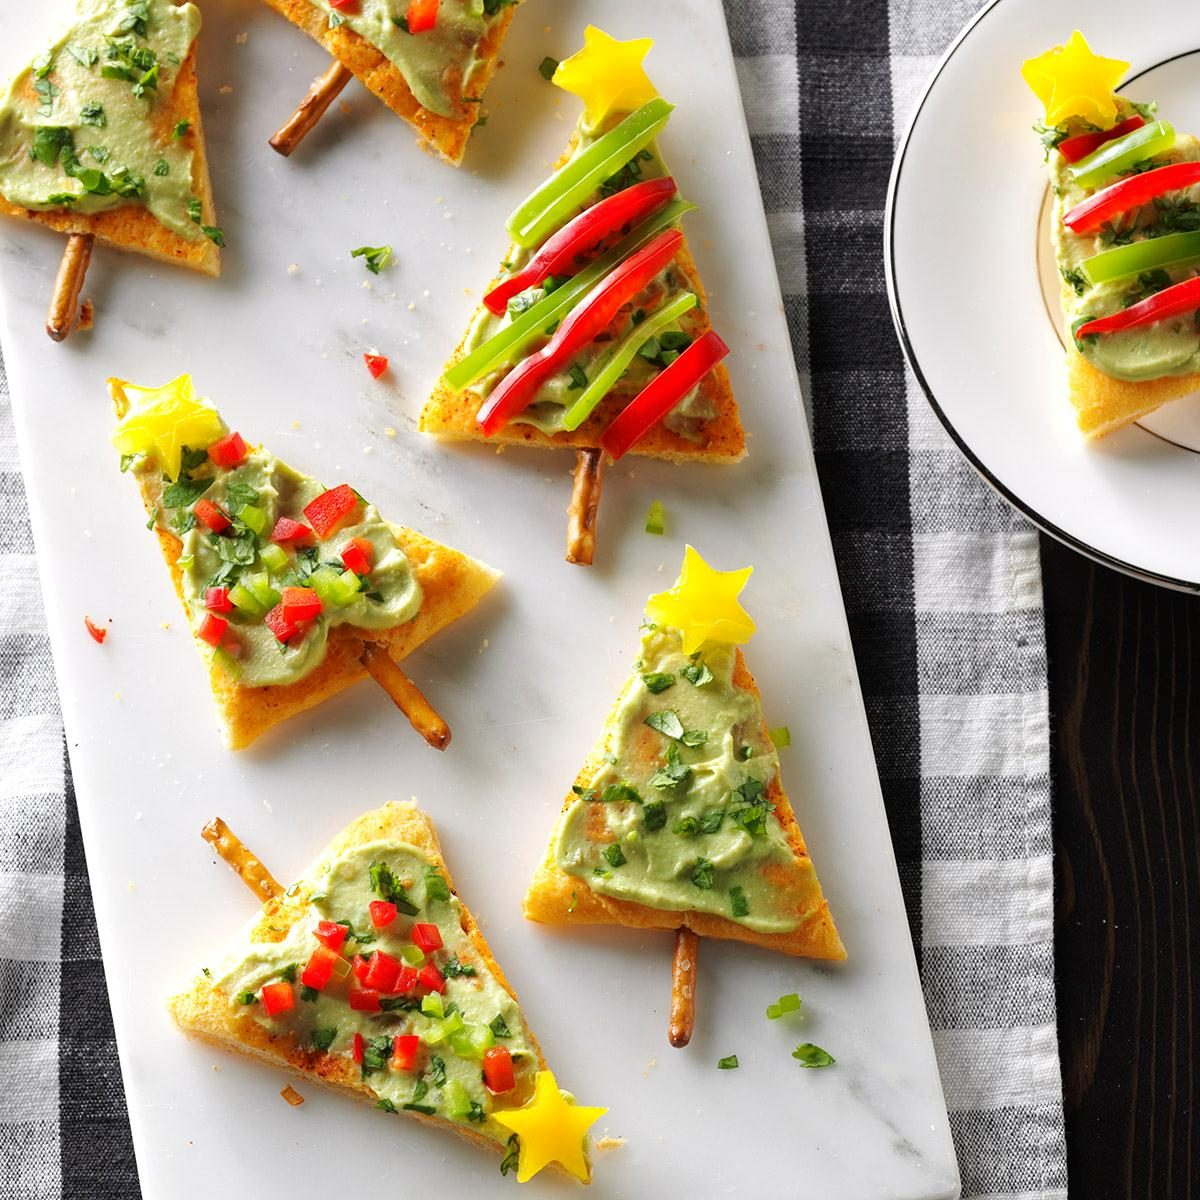 Finger Foods For Parties: 55 Festive Christmas Appetizers That Will Make You Merry